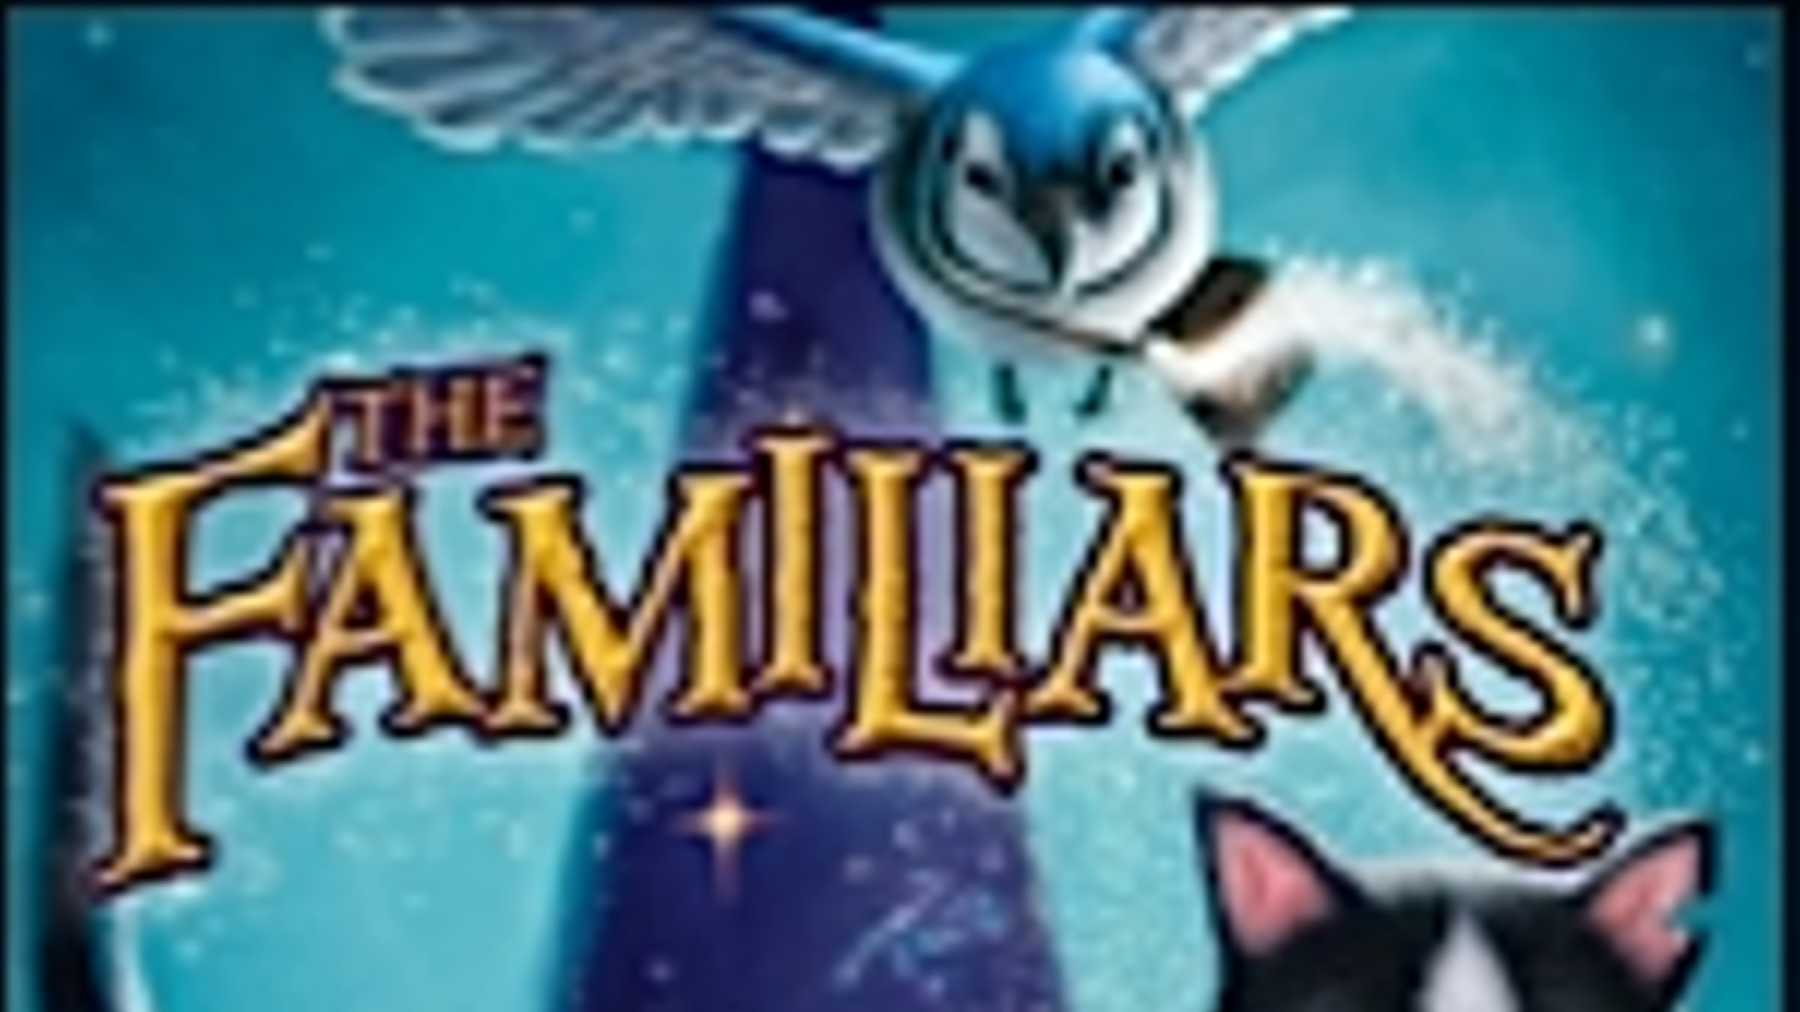 Sony Animation Finds The Familiars   Movies   Empire